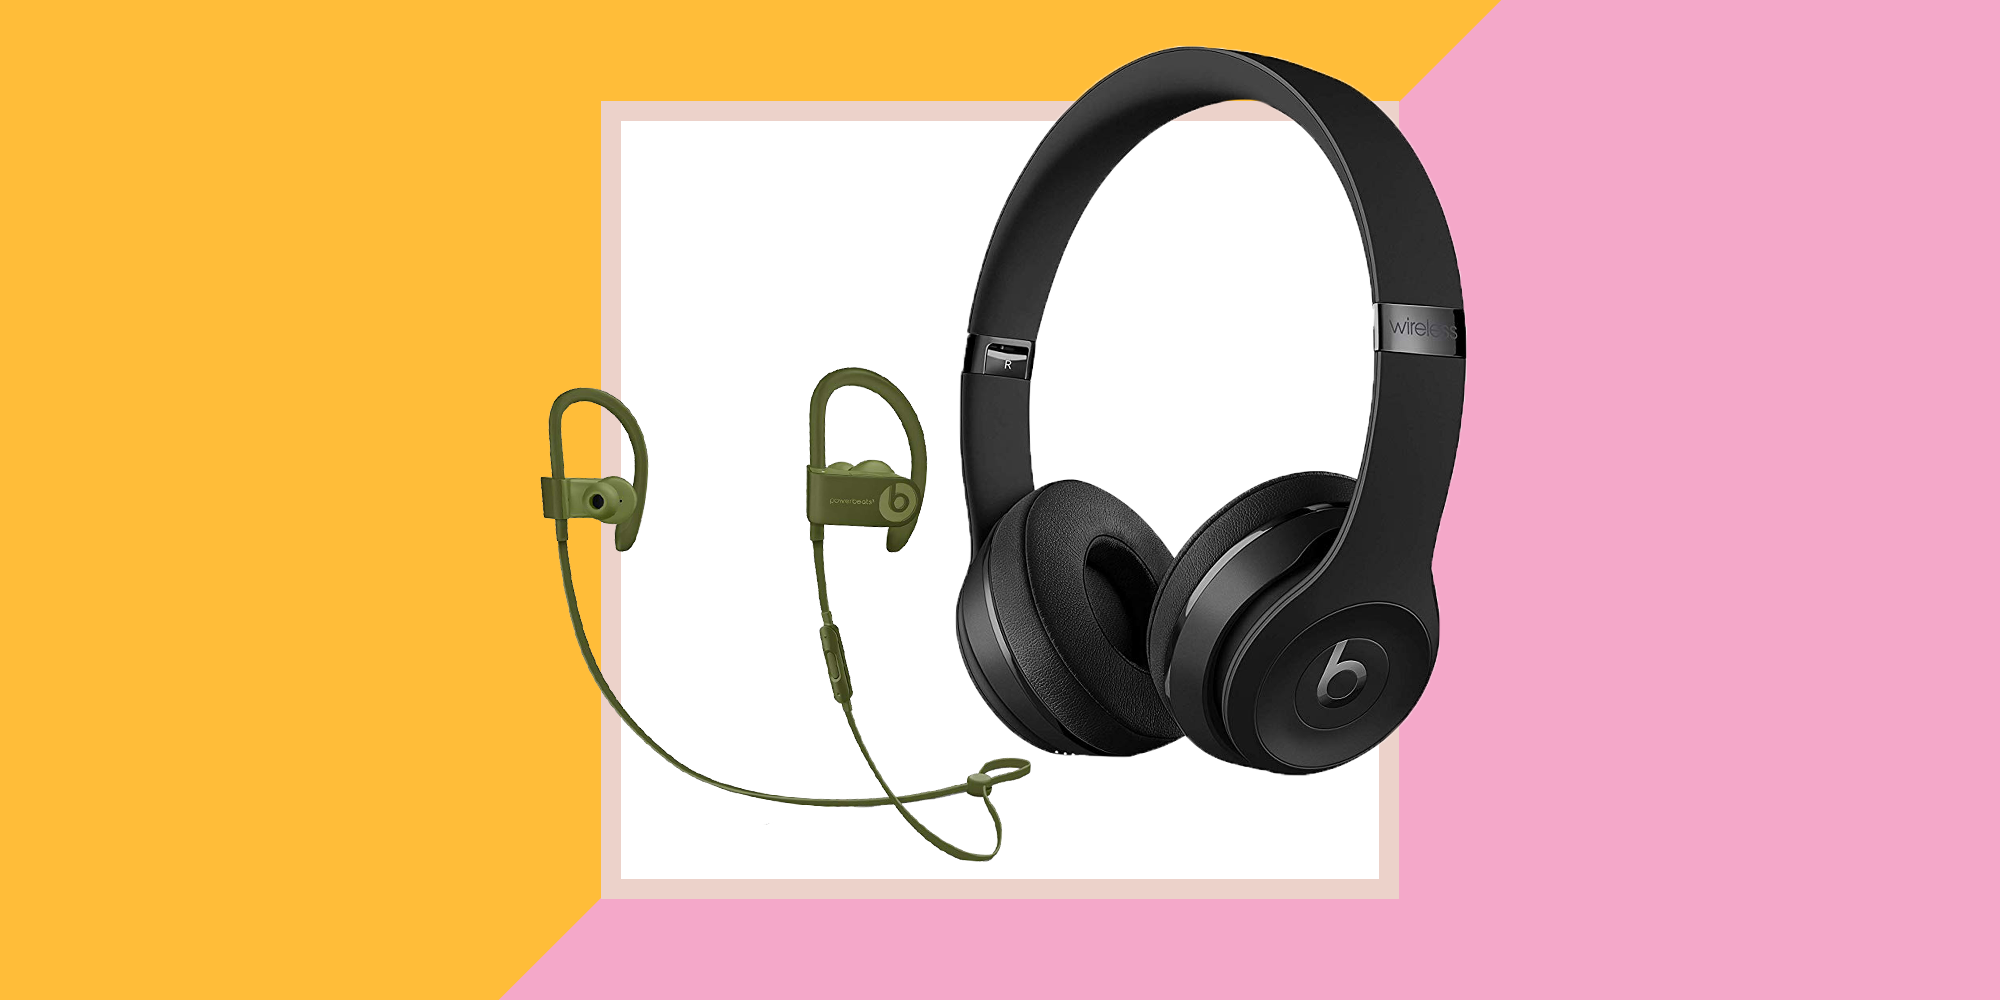 44c29f2b7c6 Amazon Deals Of The Day: Beats Wireless Headphones Are $110 Off Today